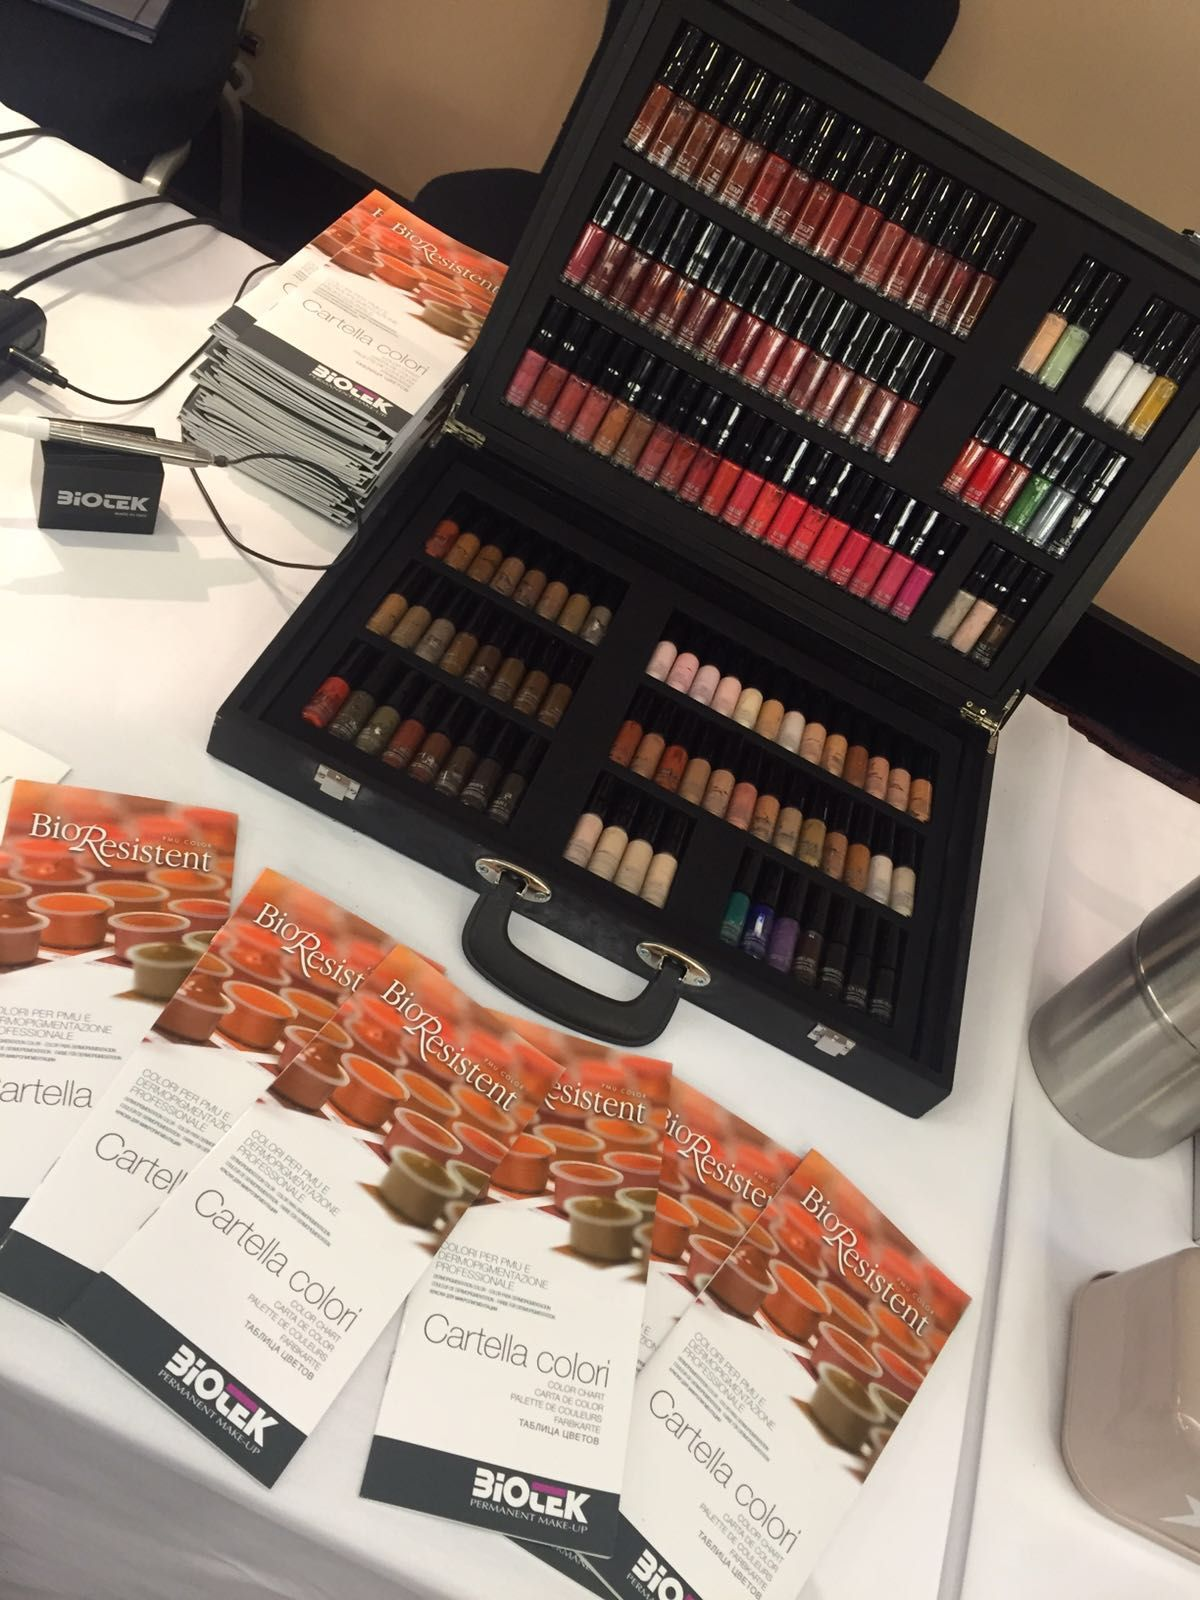 Biotek permanent makeup kits We've created a collection of